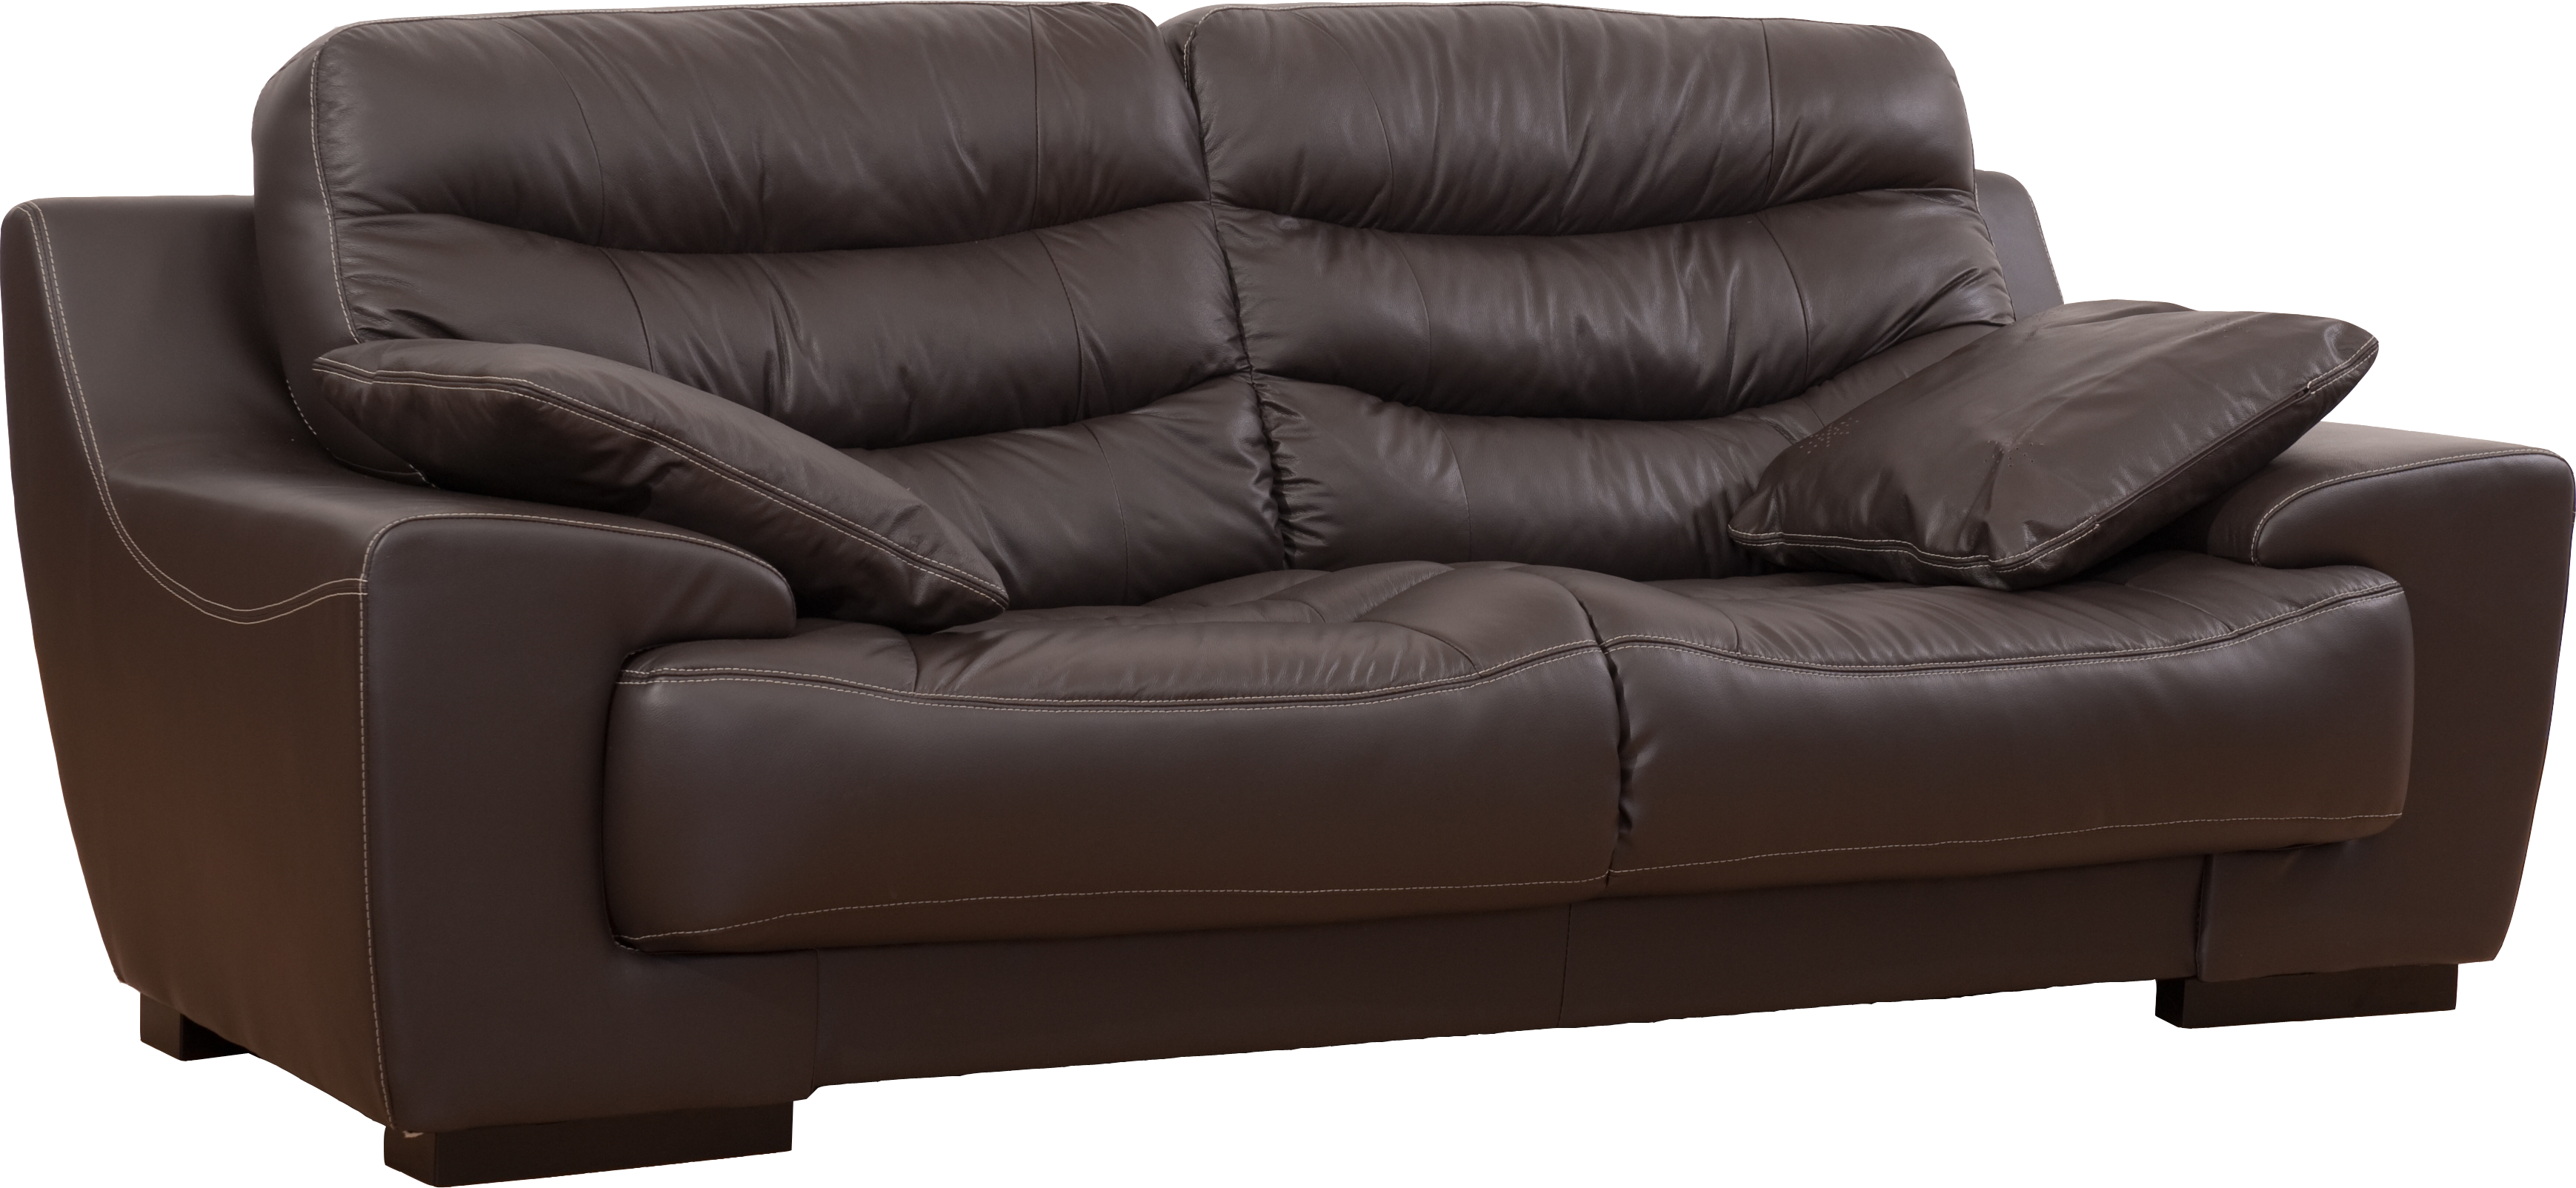 Png image . Couch clipart leather sofa